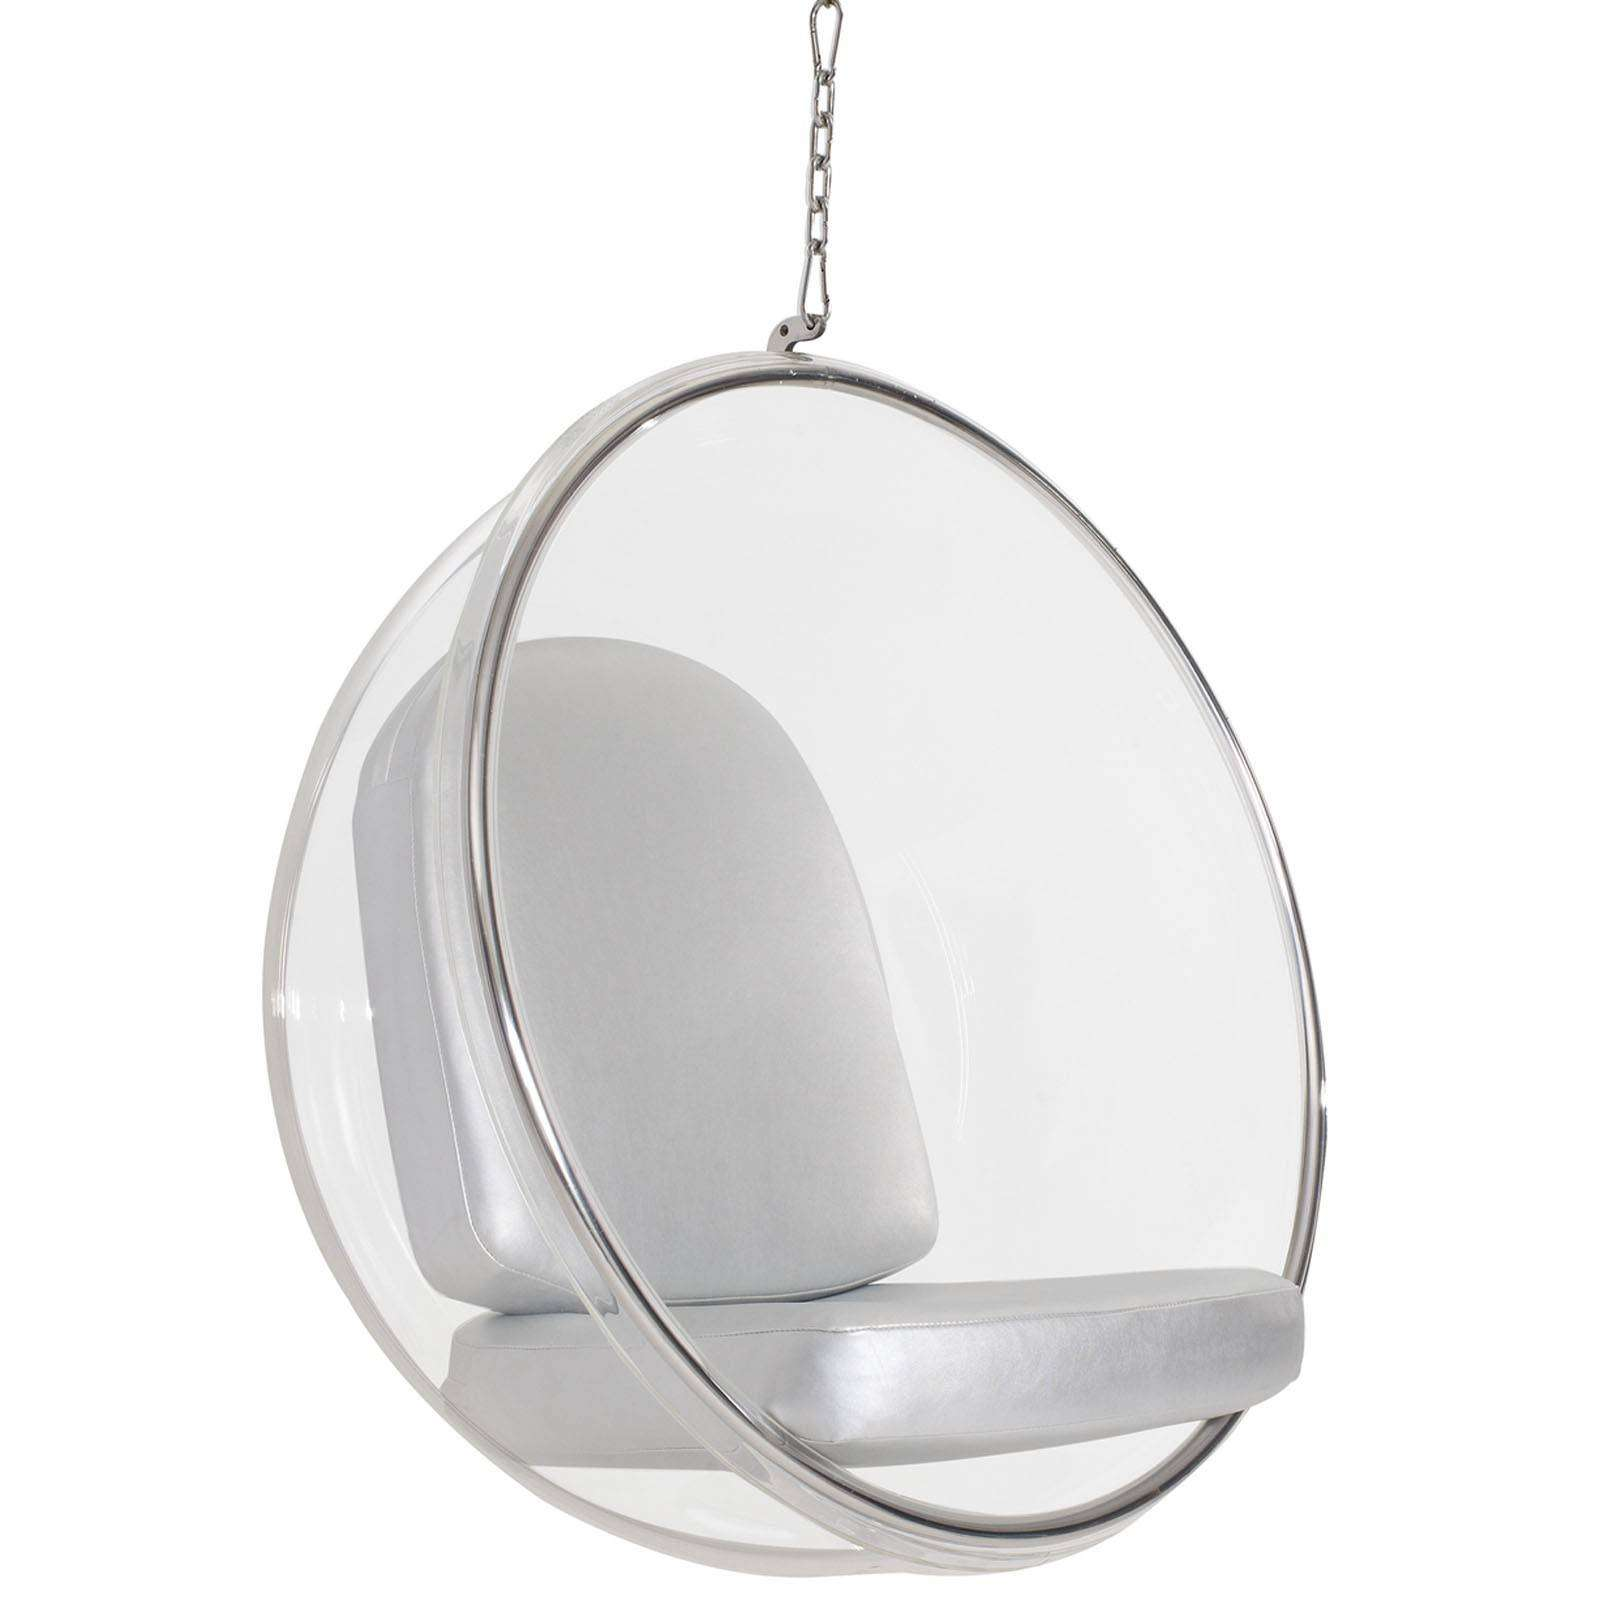 Bubble Chair Eero Aarnio Style Hanging Bubble Chair